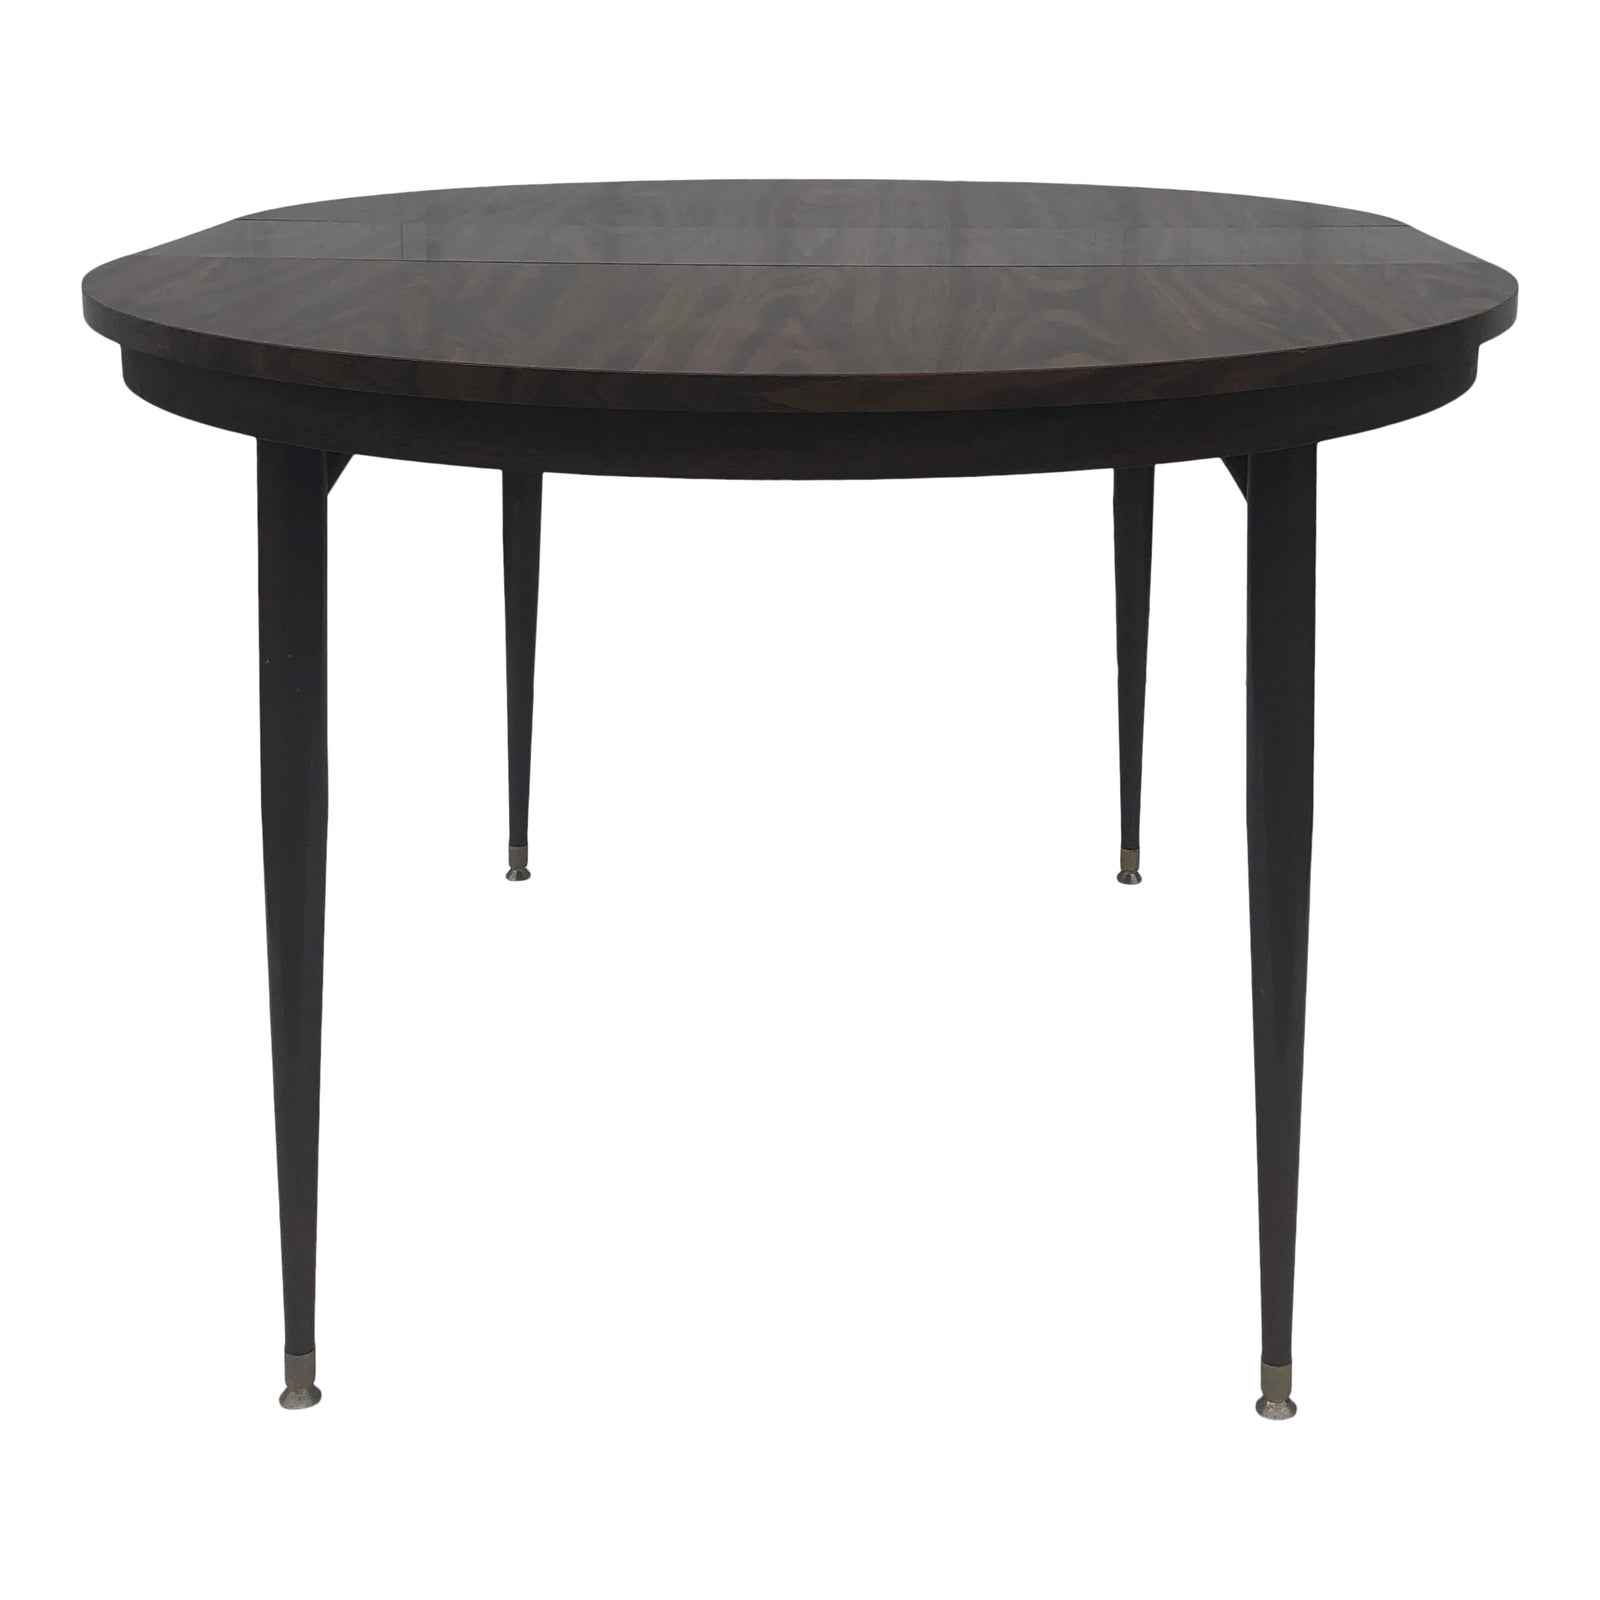 Mid Century Modern Round Dining Table With Two Leafs Chairish